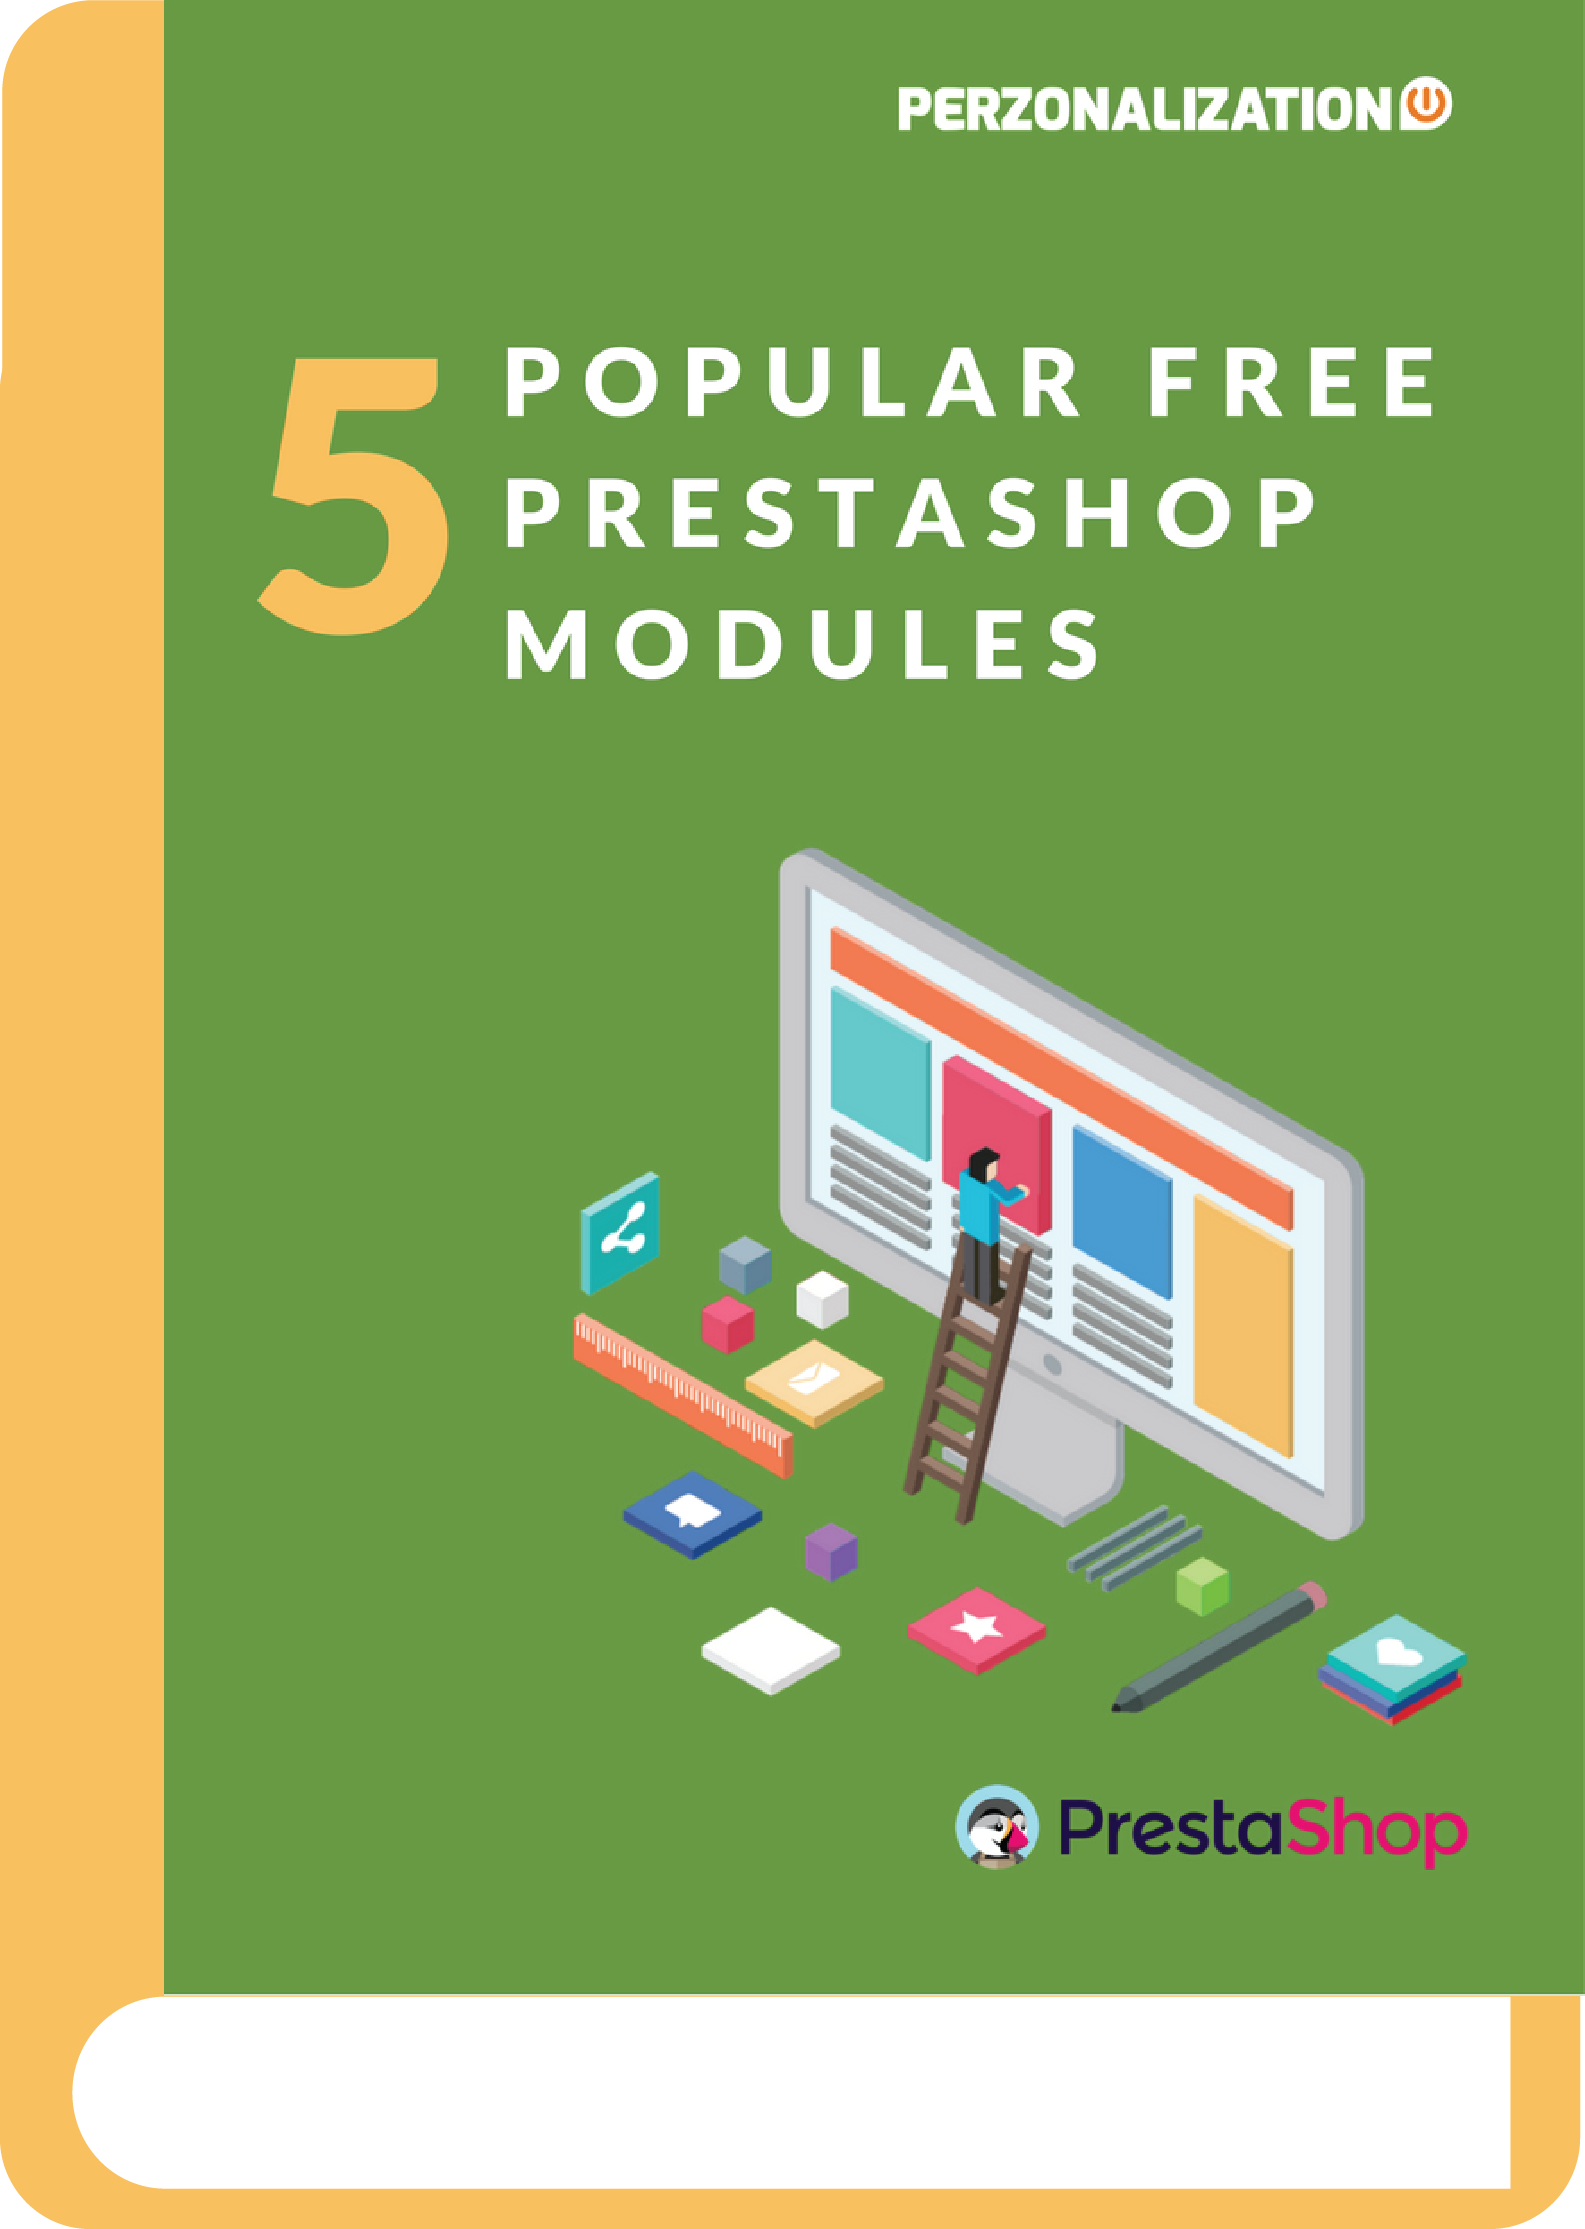 Whoever said 'Nothing comes free' surely didn't know about these gorgeous Prestashop free Modules which are absolutely free.